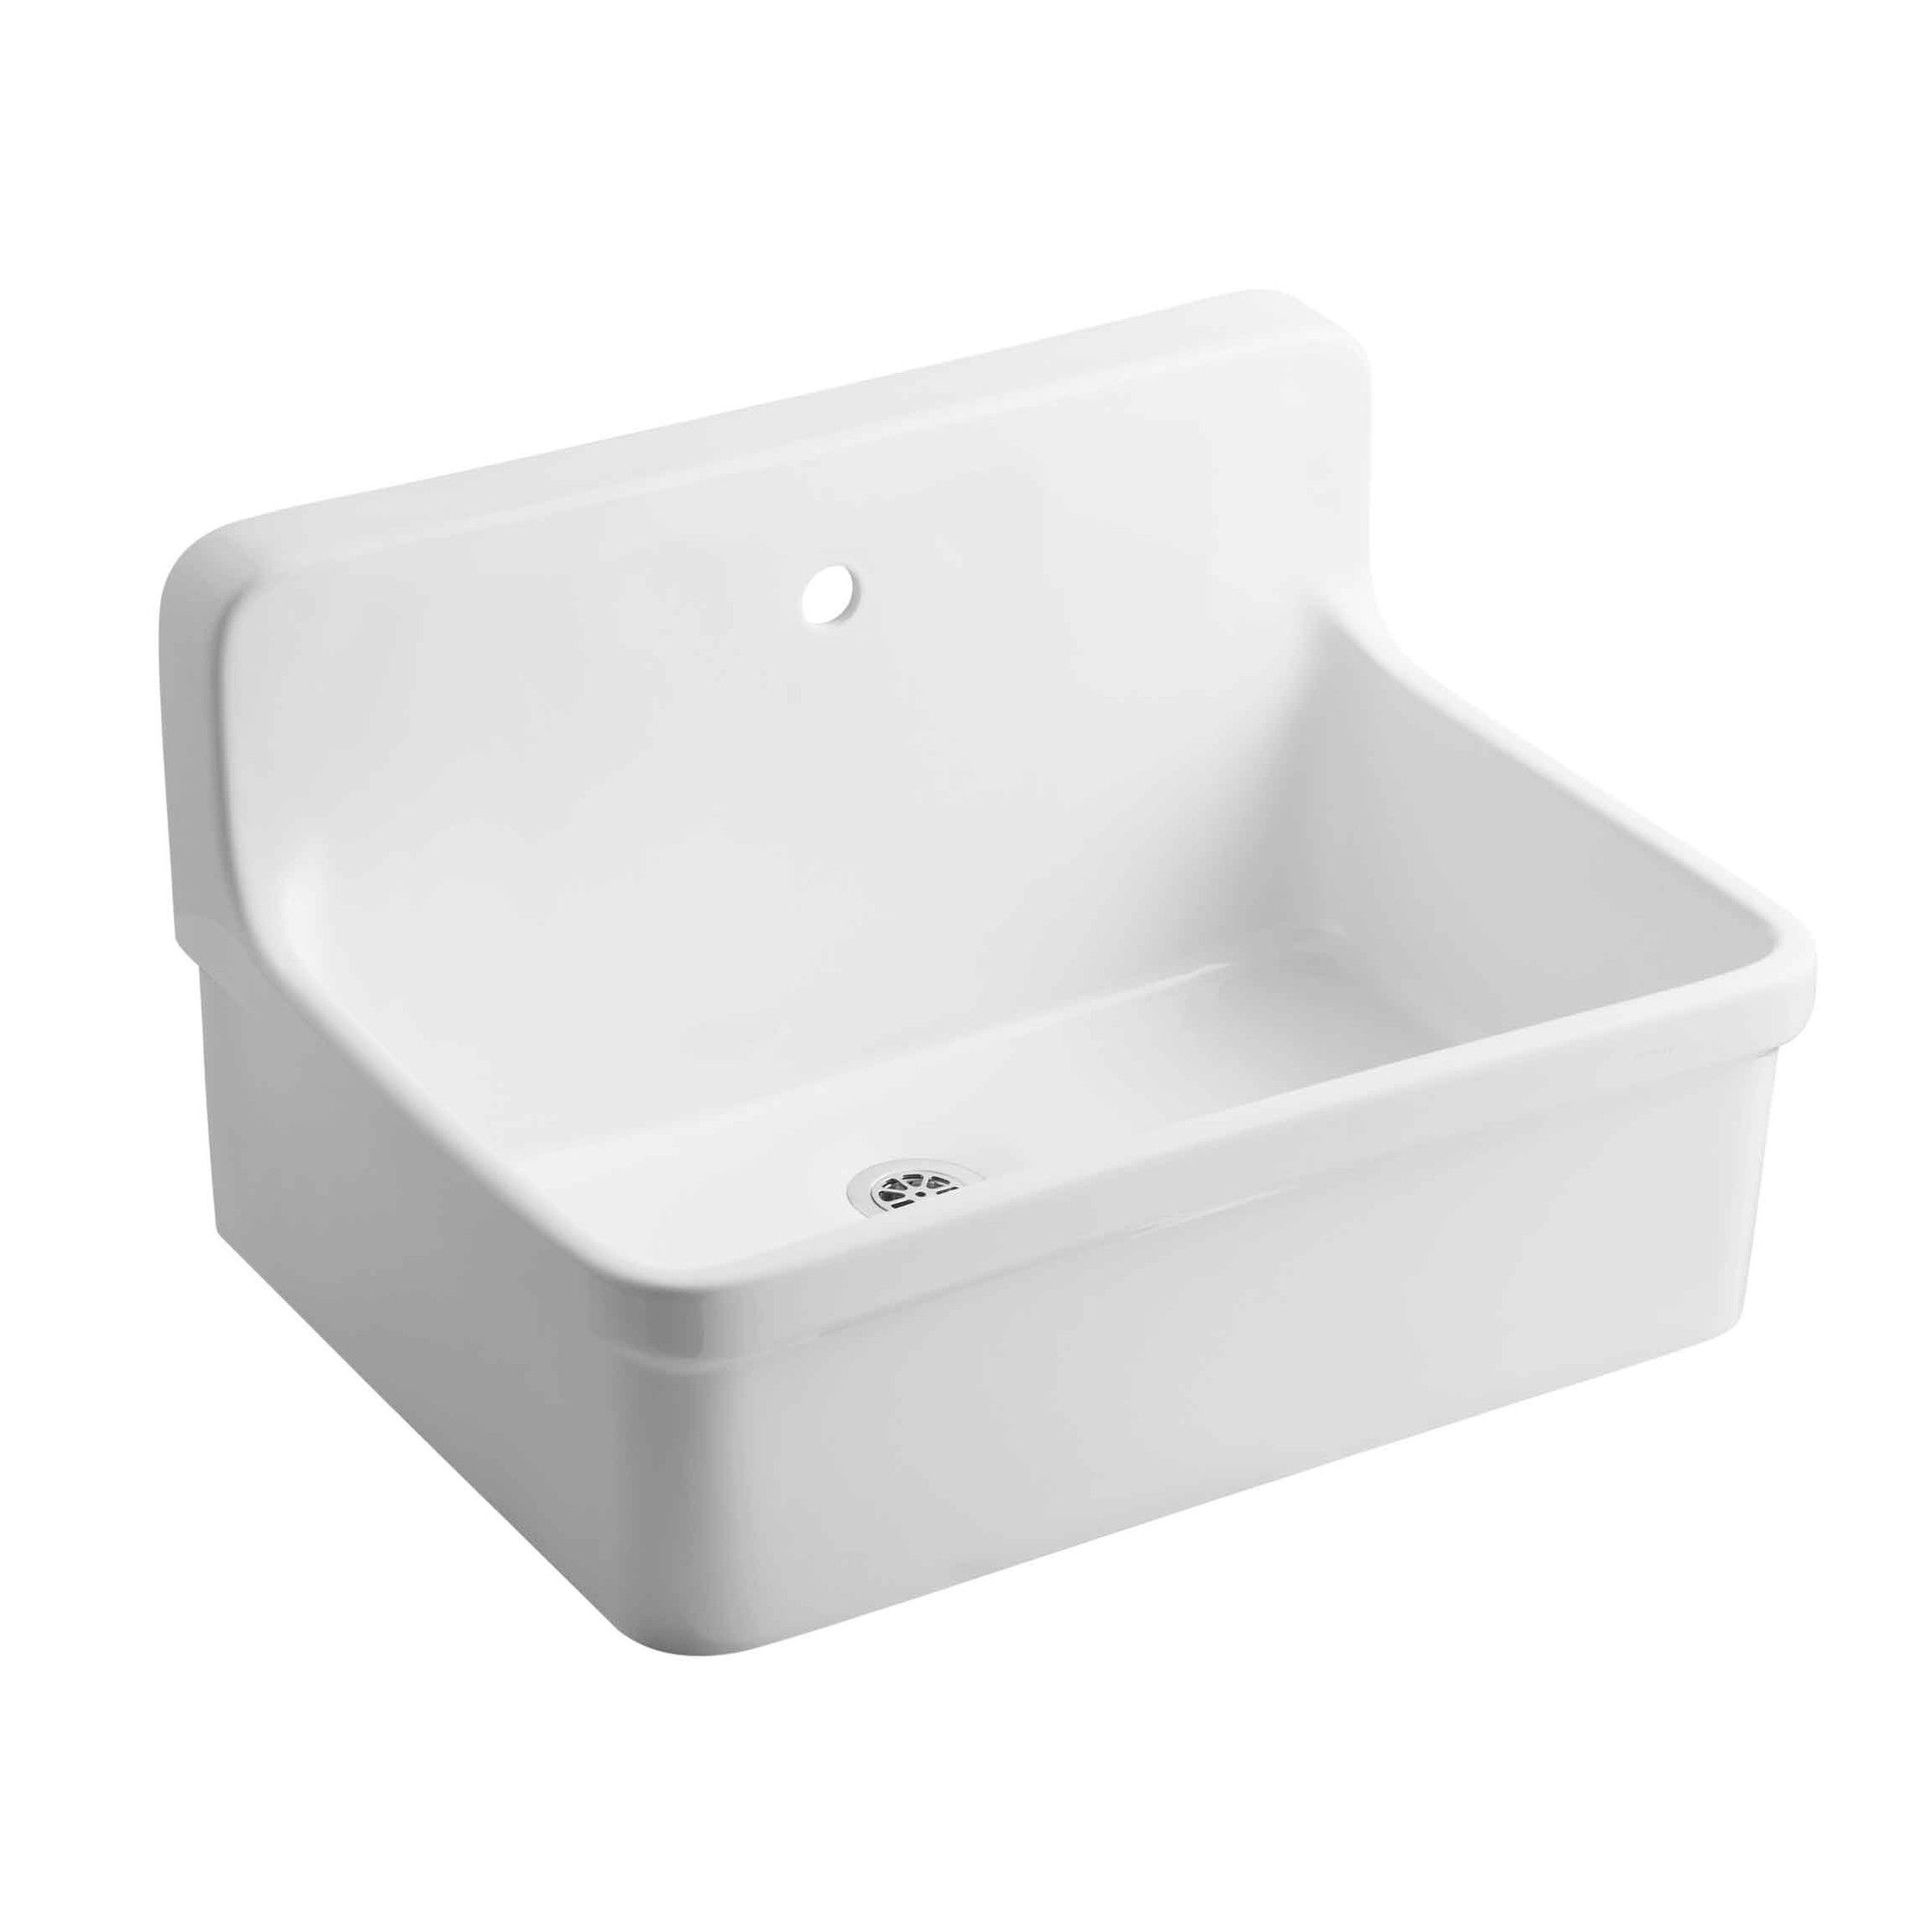 Gilford 30 X 22 Wall Mounted Laundry Sink Laundry Sink Laundry Room Storage Shelves Laundry Room Sink